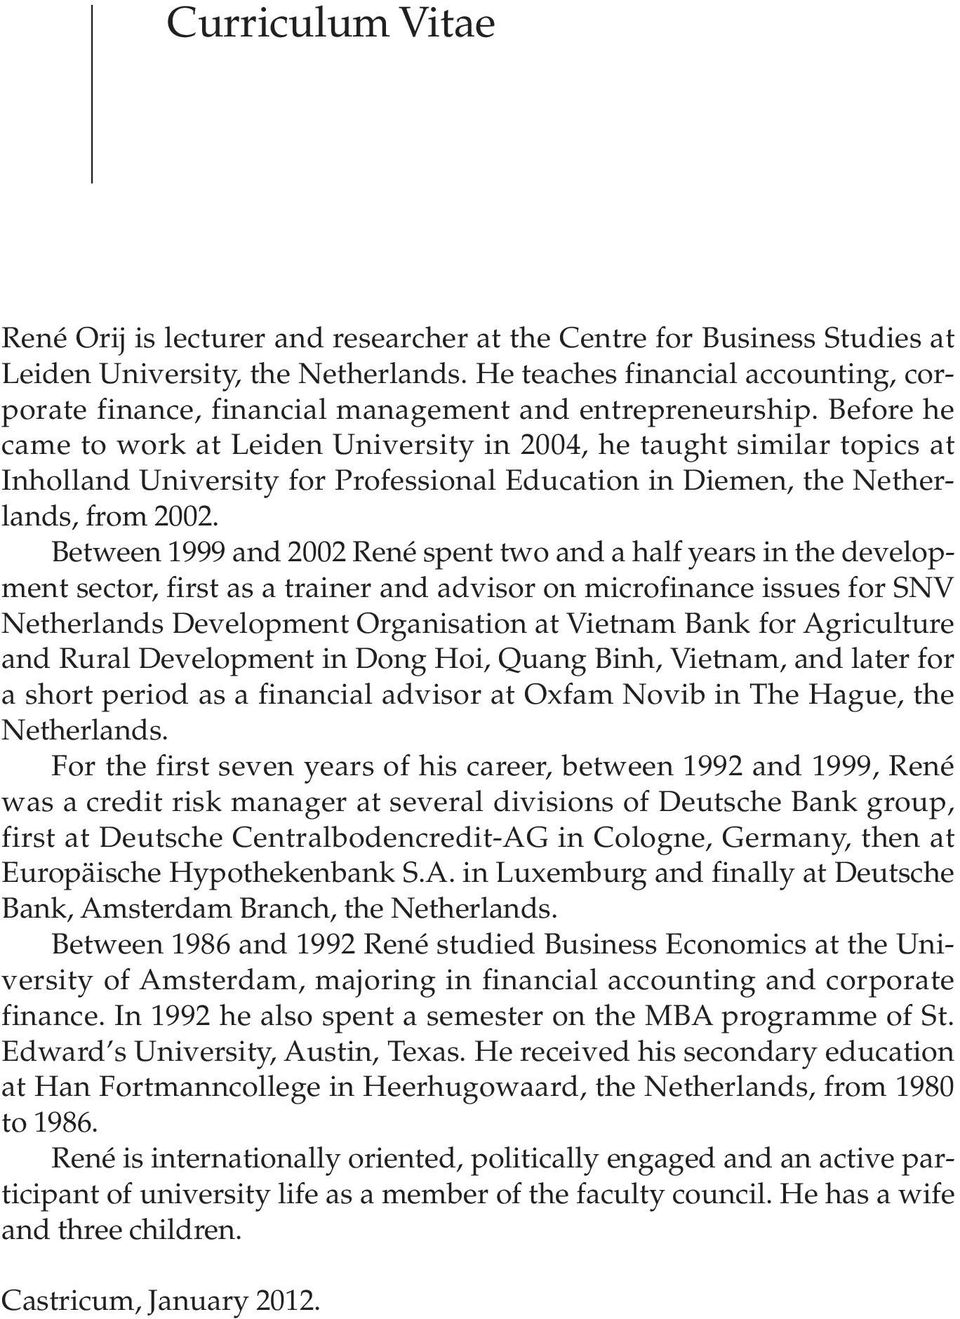 Before he came to work at Leiden University in 2004, he taught similar topics at Inholland University for Professional Education in Diemen, the Netherlands, from 2002.